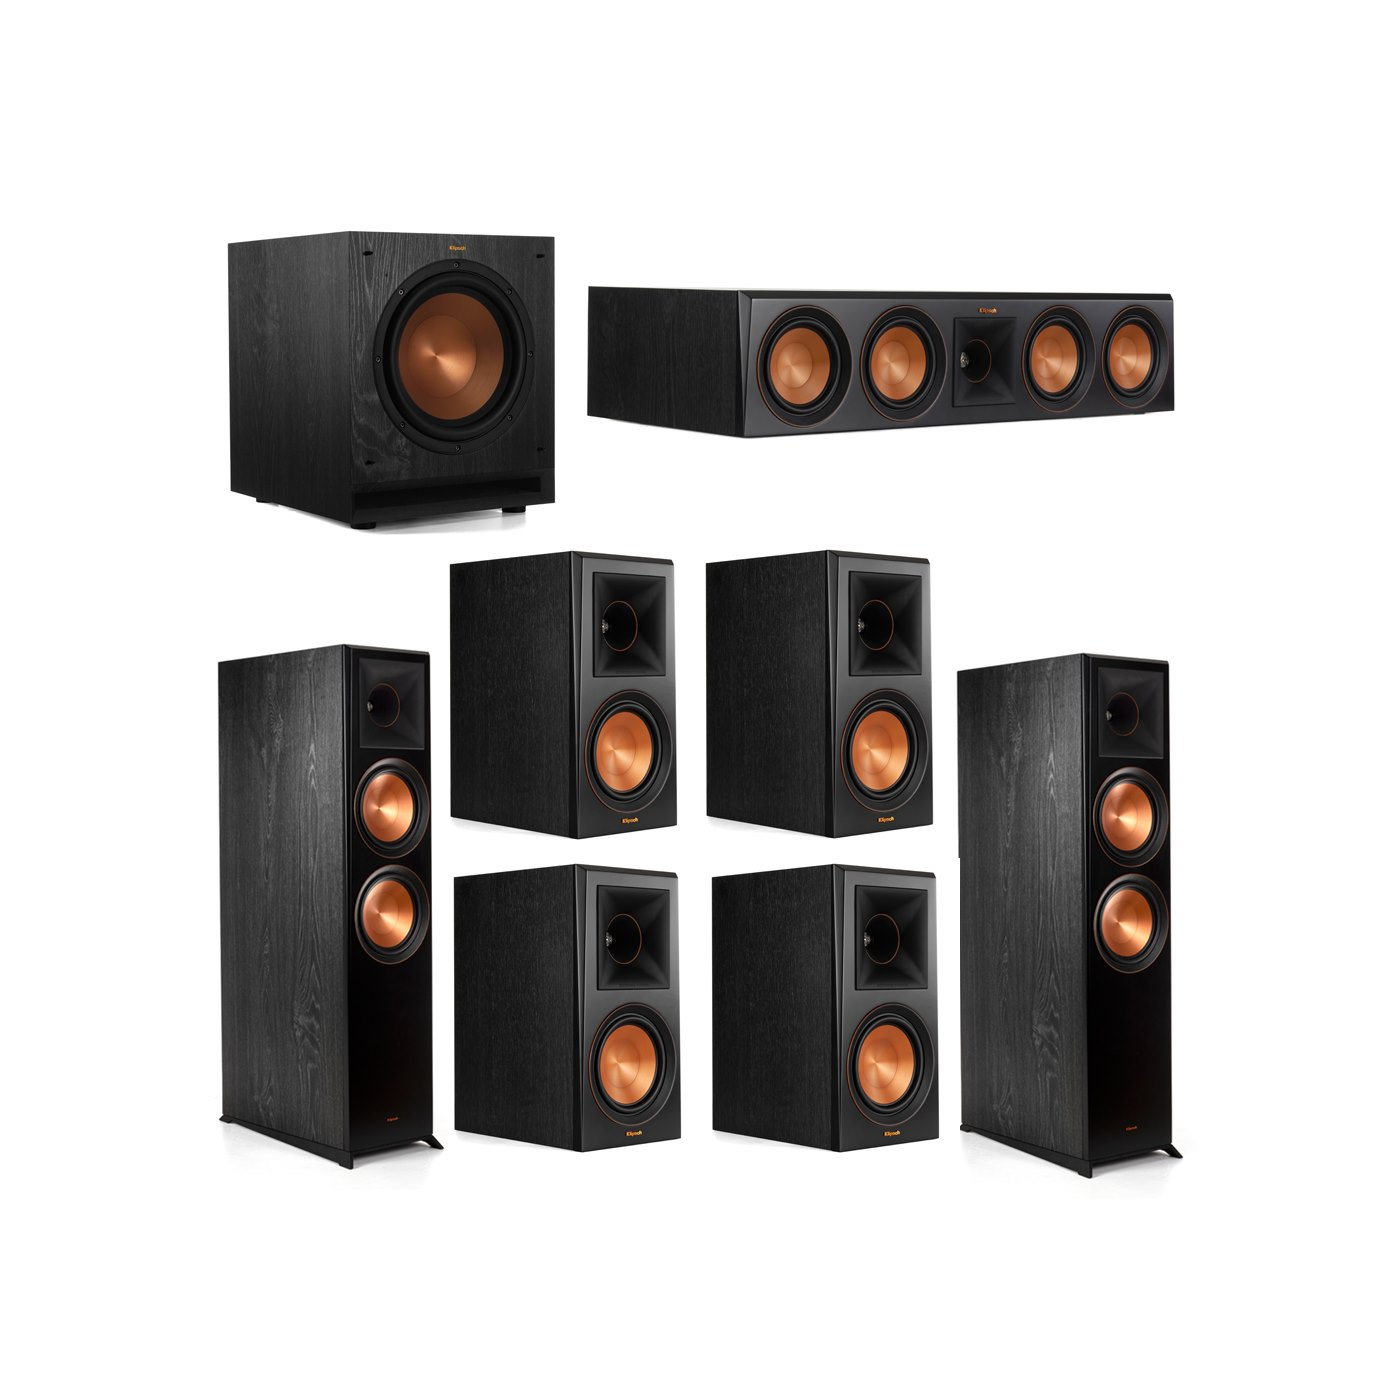 Klipsch 7.1.2 System - 2 RP-8060FA Dolby Atmos Speakers, 1 RP-504C, 4 RP-600M Speakers, 1 SPL-100